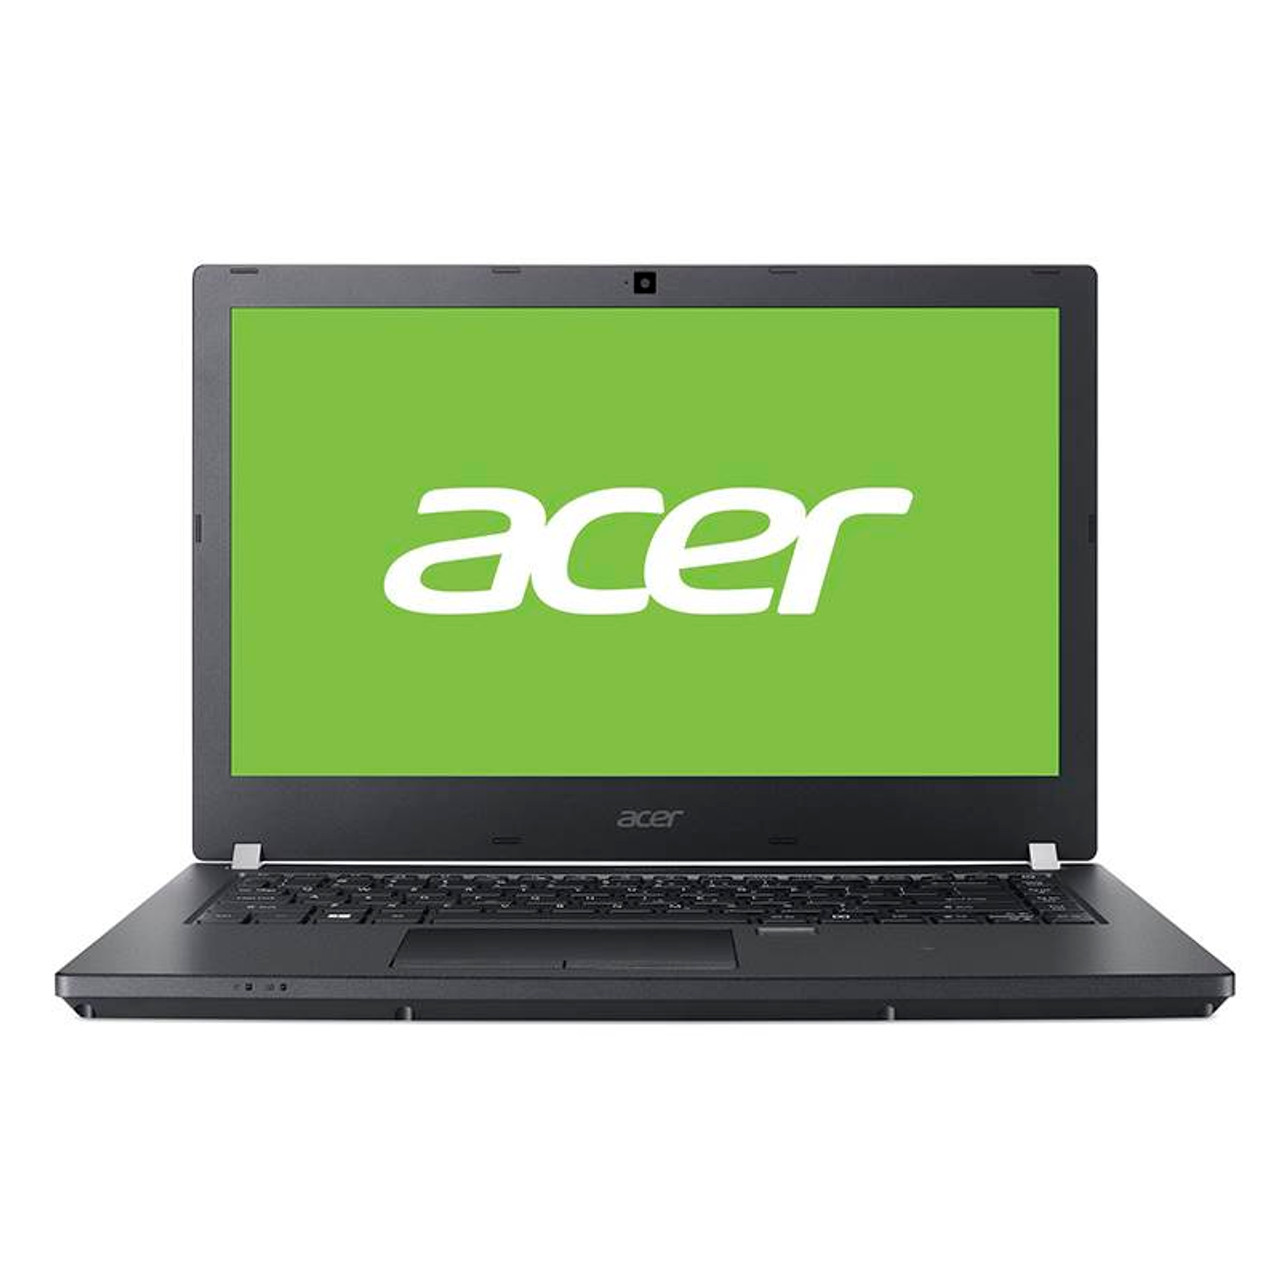 Image for Acer TravelMate P449 G2 14in Notebook i7-7600U 16GB 256GB+1TB Win10 Pro  CX Computer Superstore